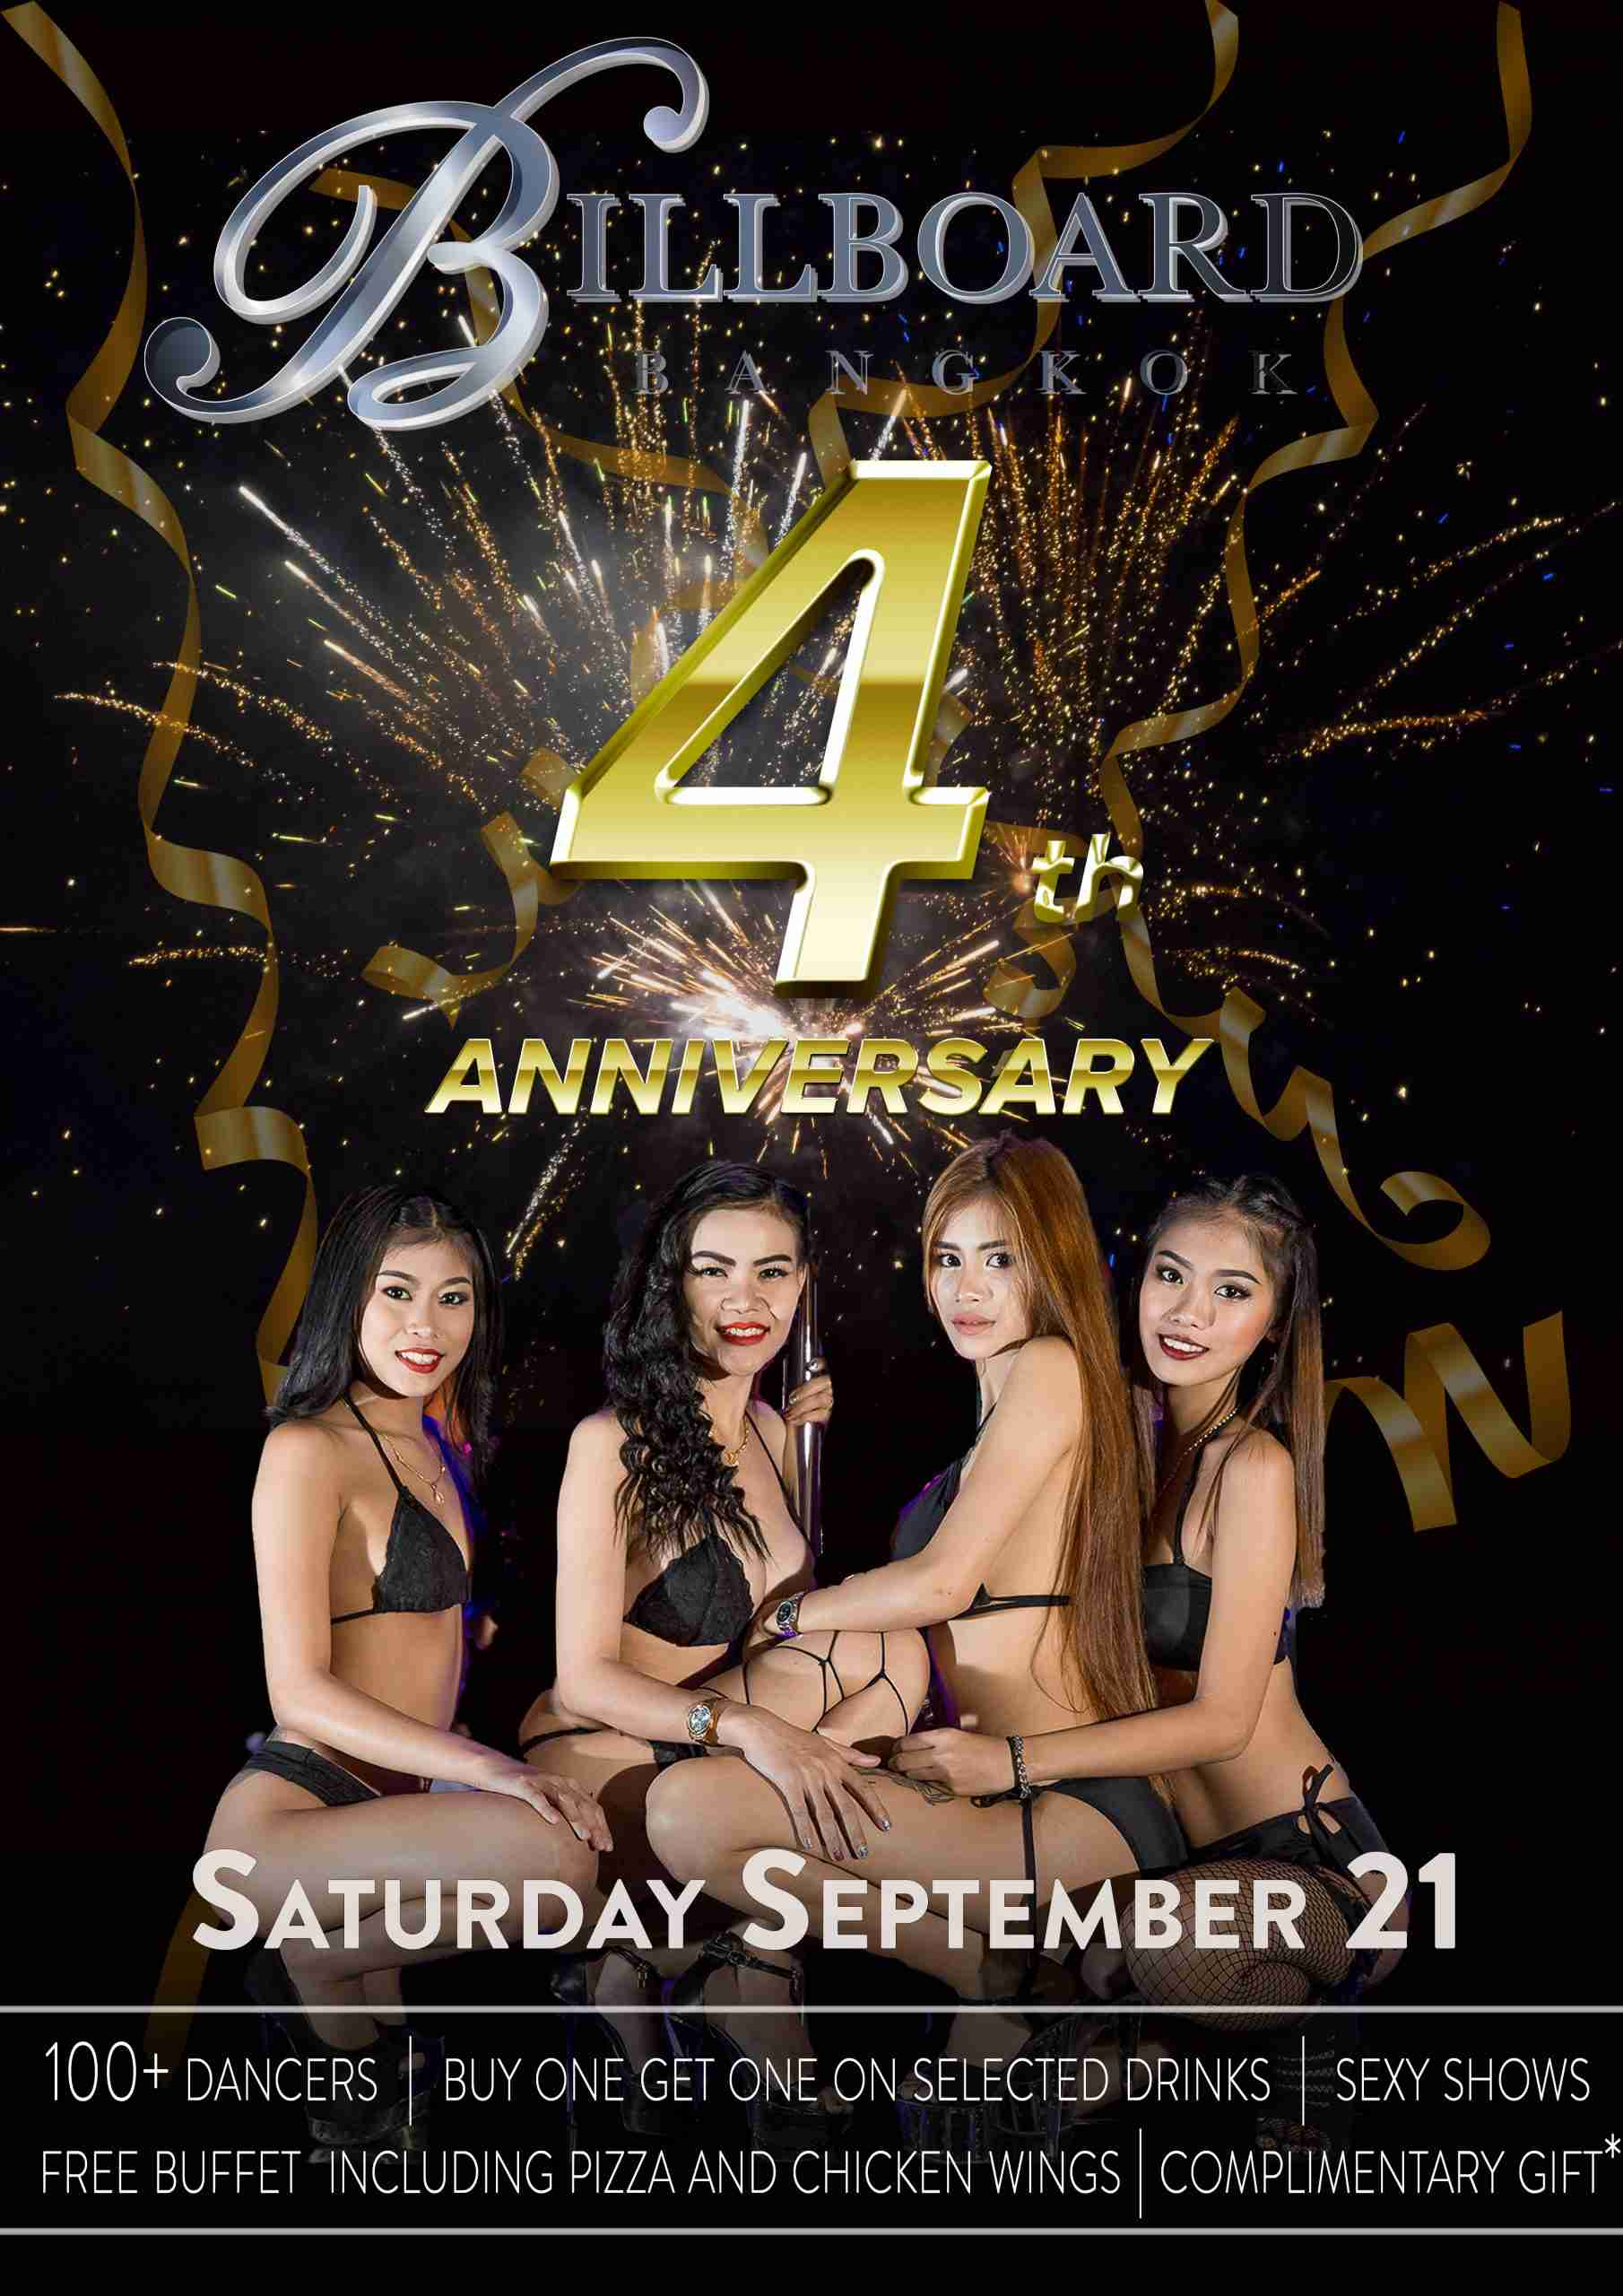 Billboard 4th Anniversary Party Poster